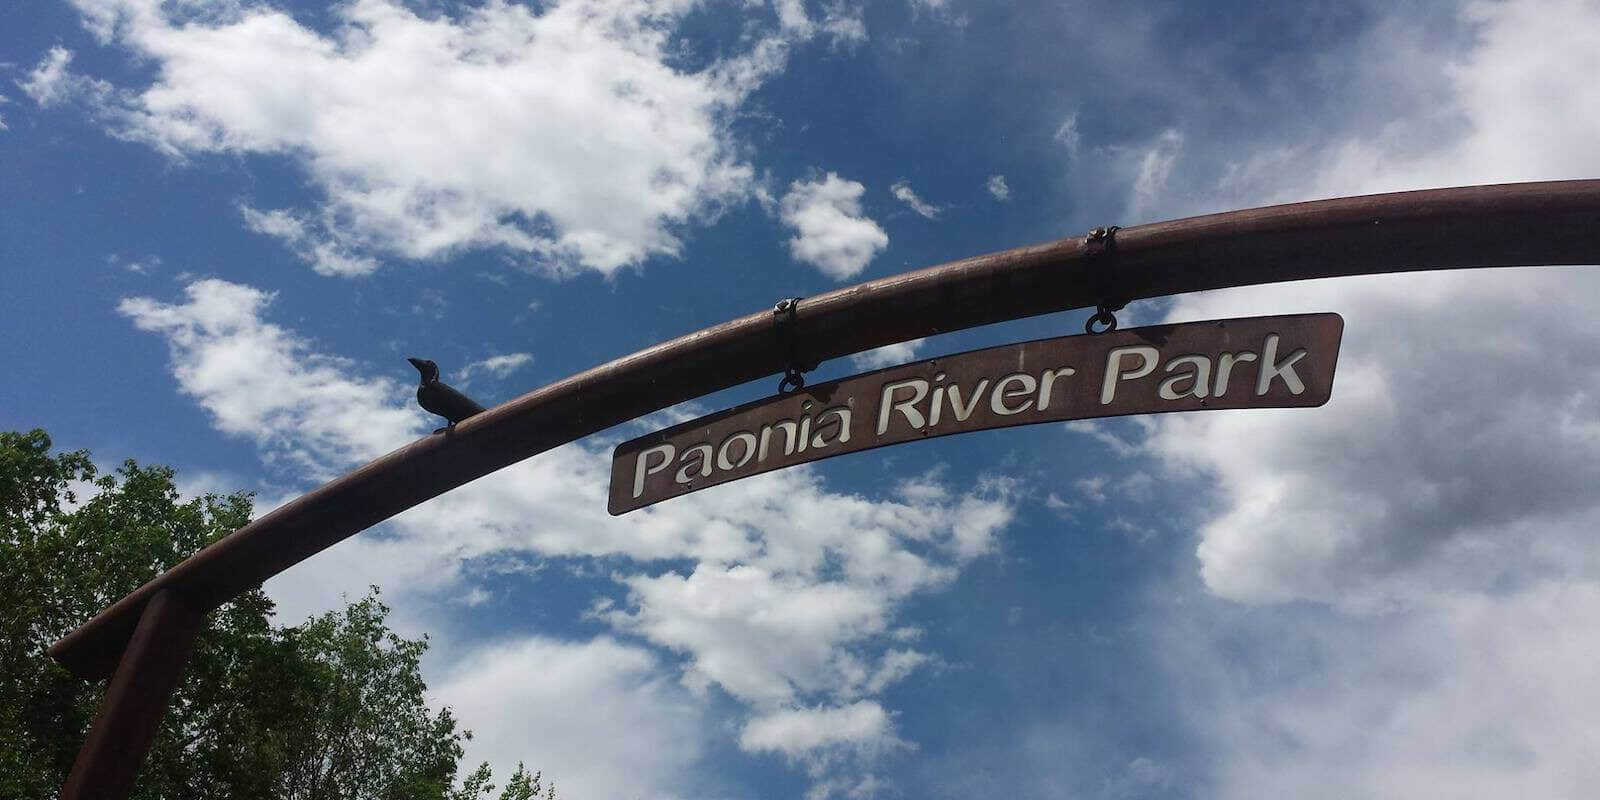 Image of the Paonia River Park in Colorado